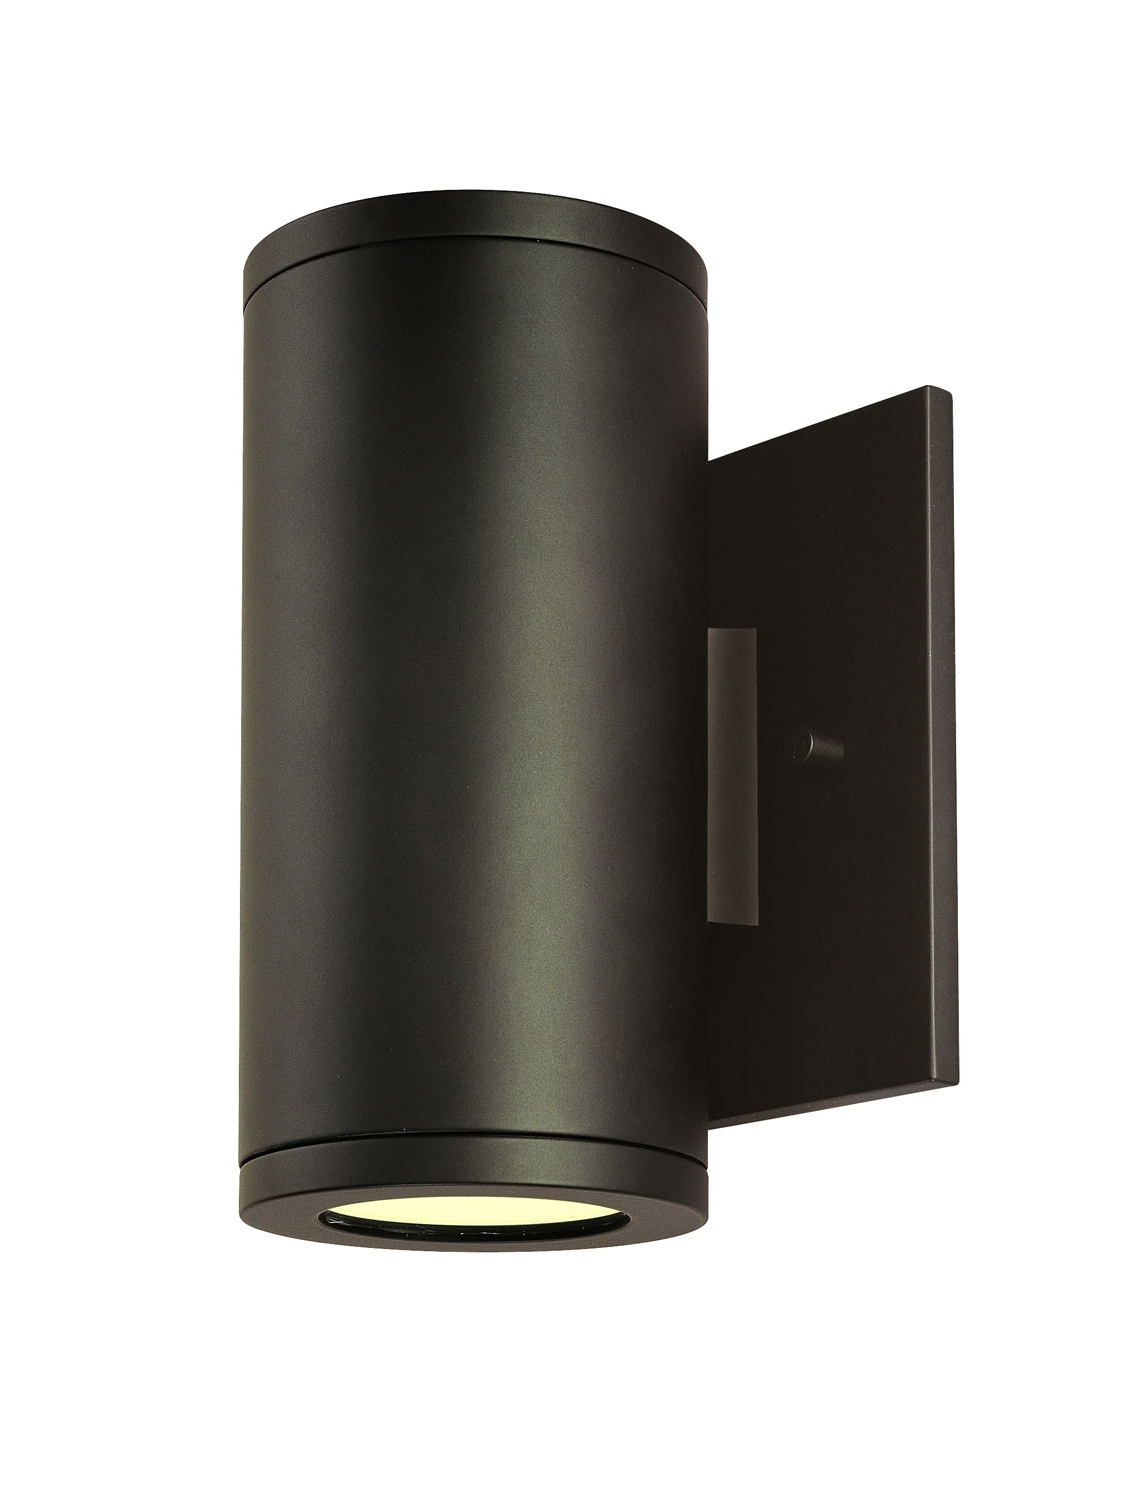 Famous Outdoor Wall Mounted Decorative Lighting Throughout Light : Wooden Outdoor Wall Mounted Light Fixtures Brown Simple (View 14 of 20)